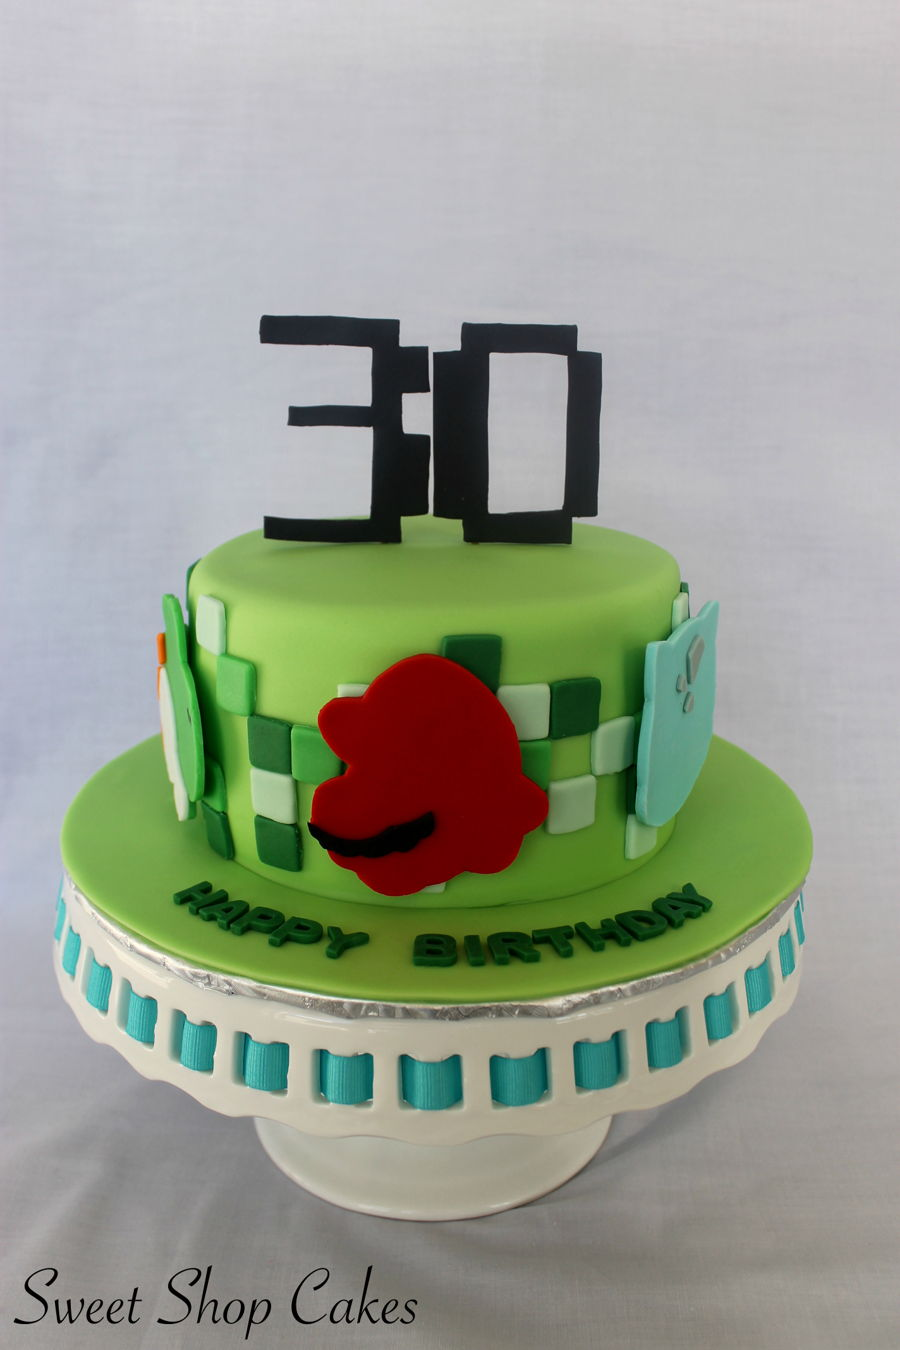 900_video-game-birthday-cake-937512KcMRl.jpg